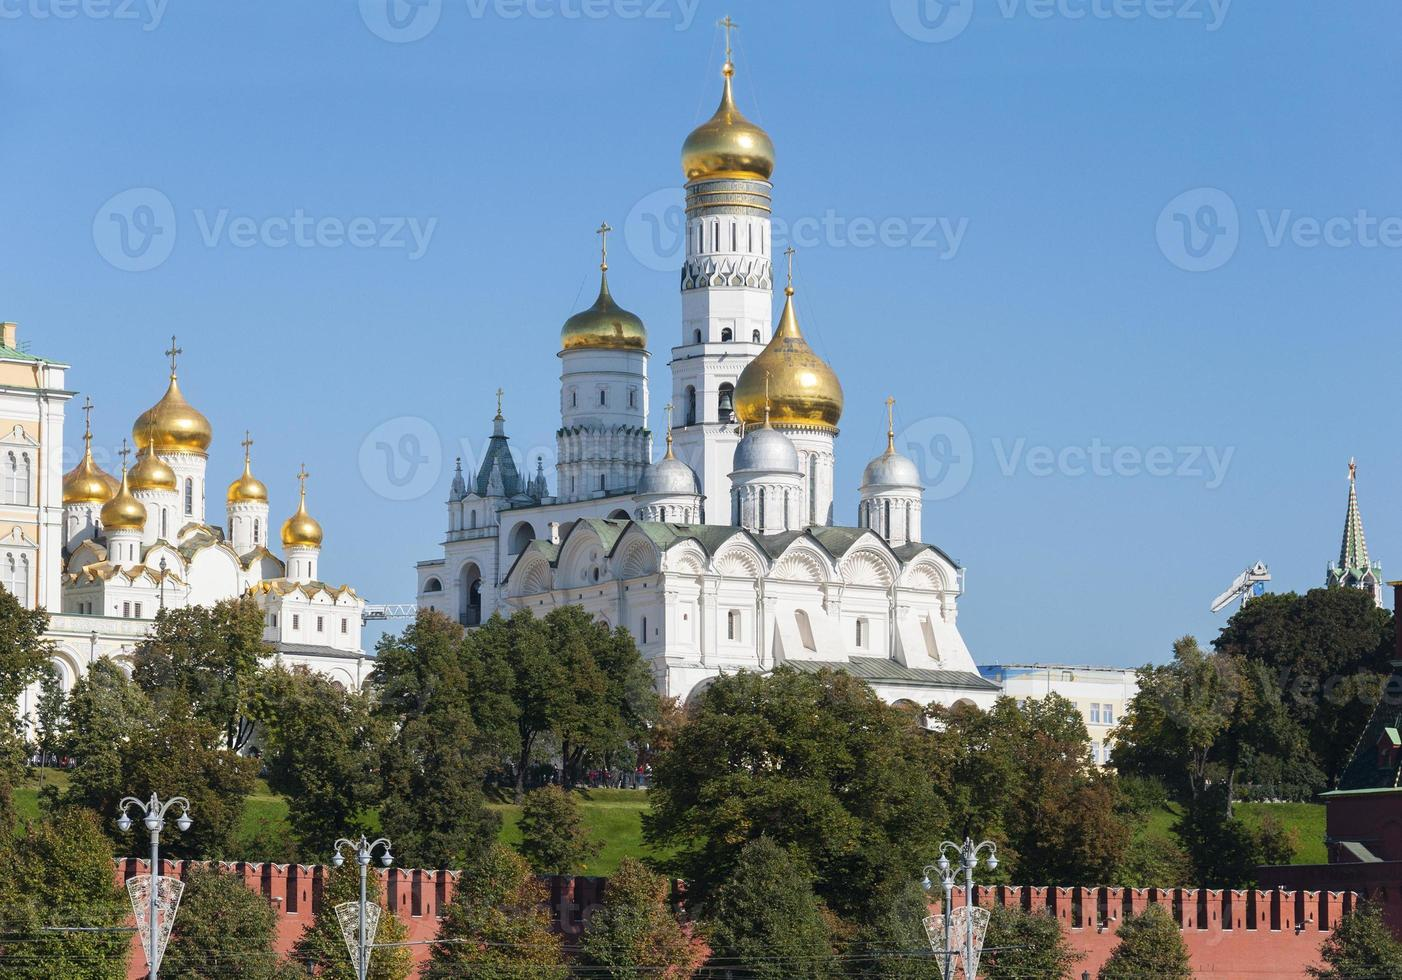 Ivan the Great Bell in Moscow Kremlin, Russia, 1505 year photo